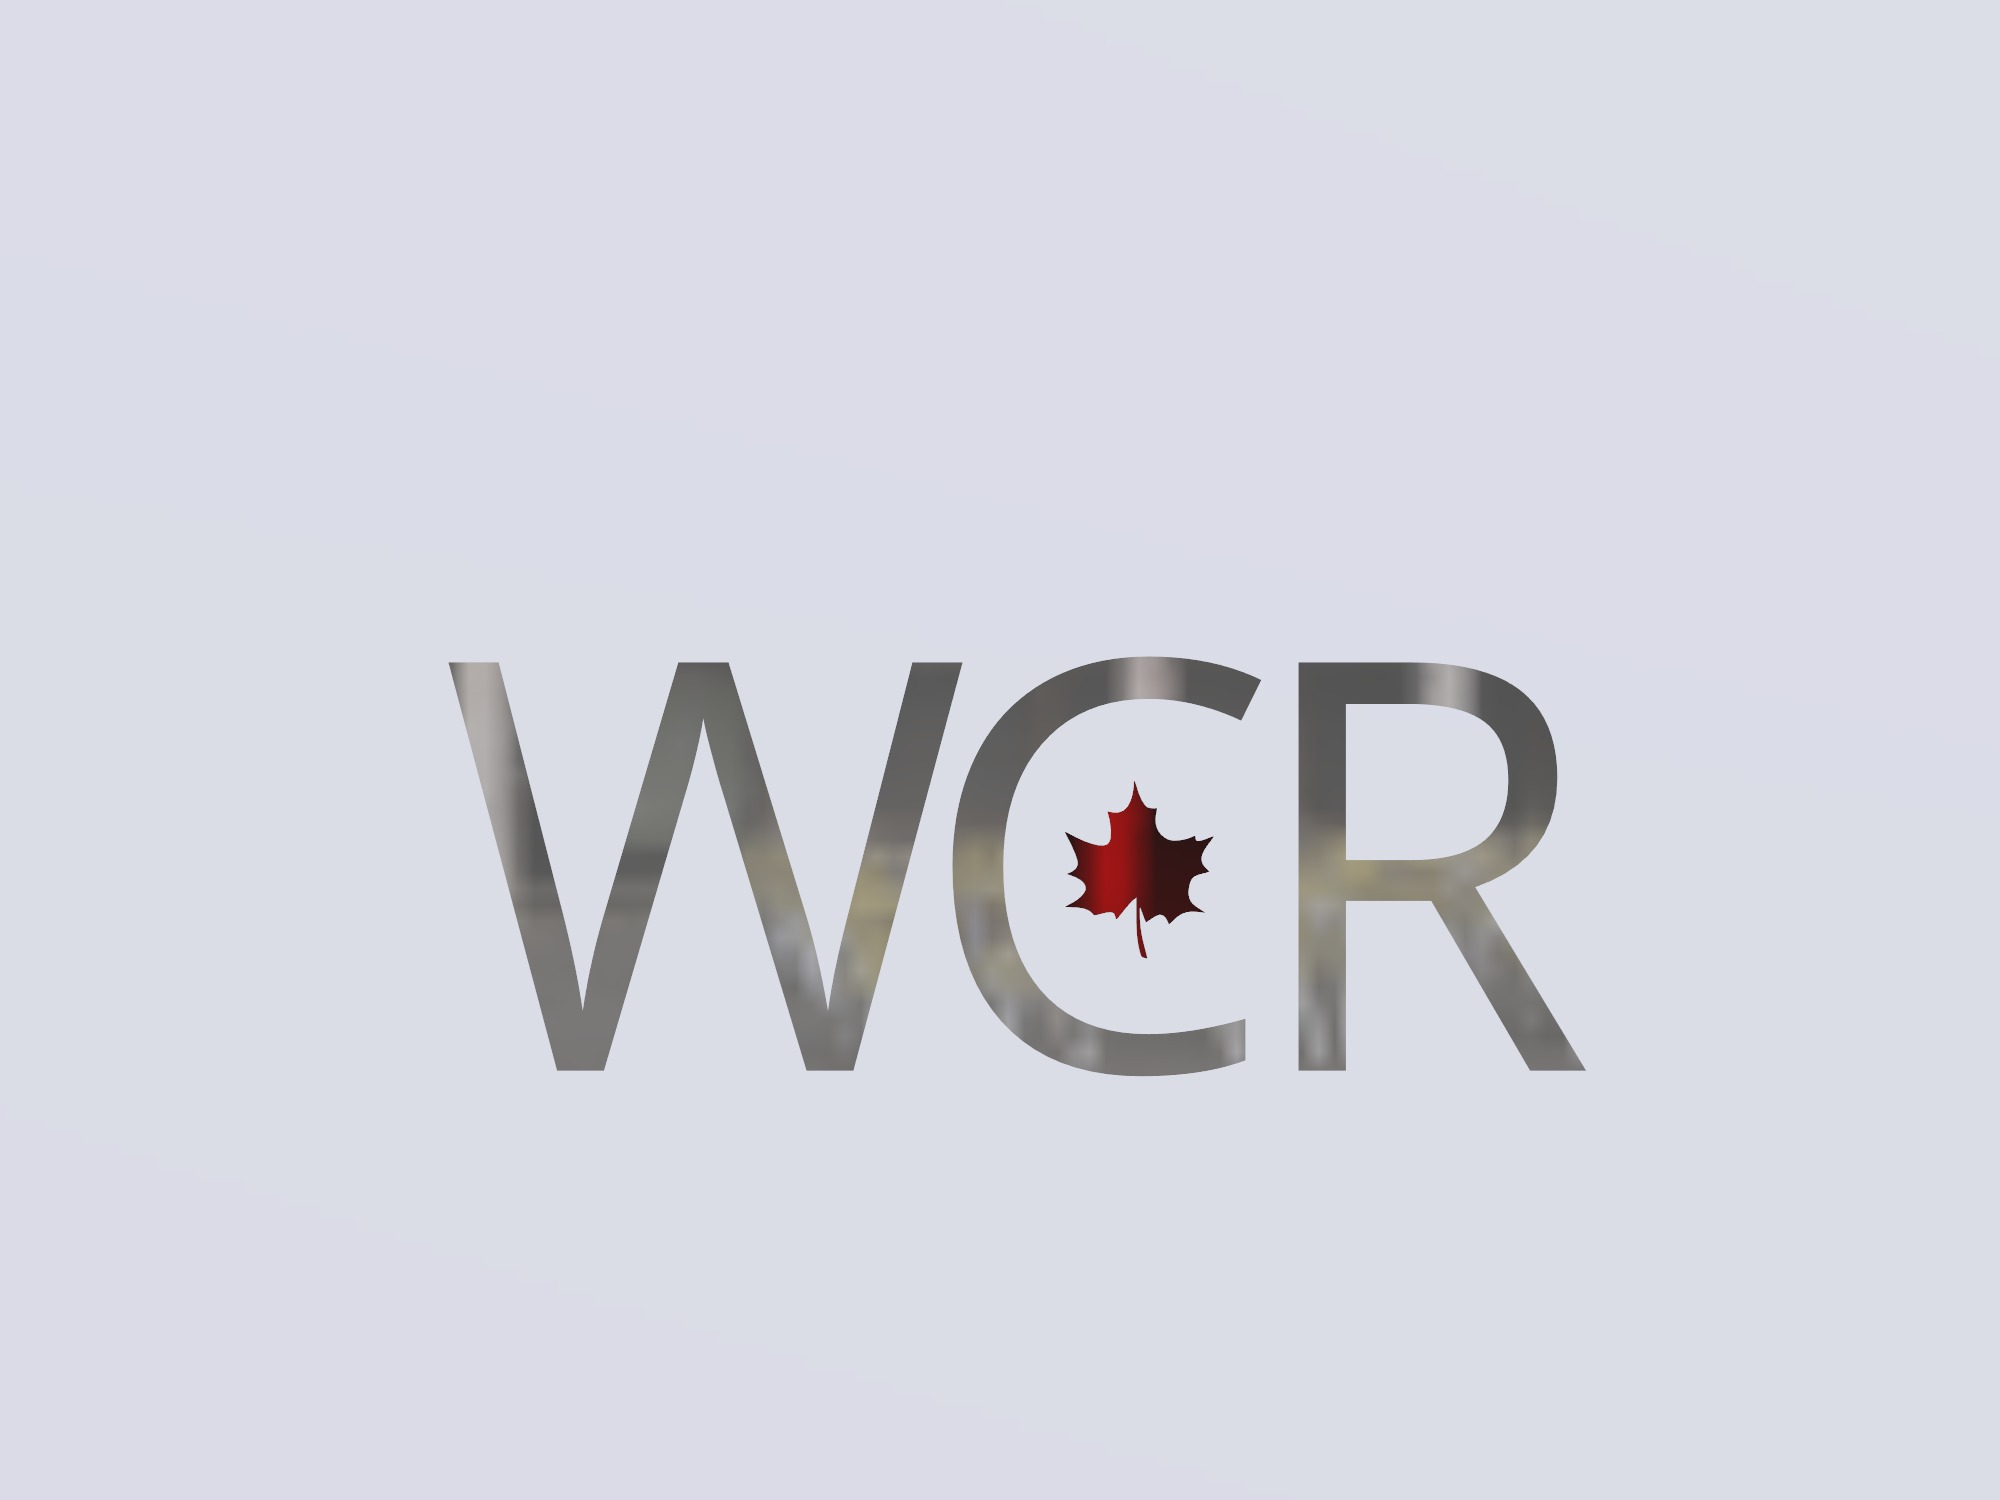 WCR 3D Logo (copy) - 3D design by Allie Davidson on Dec 18, 2018